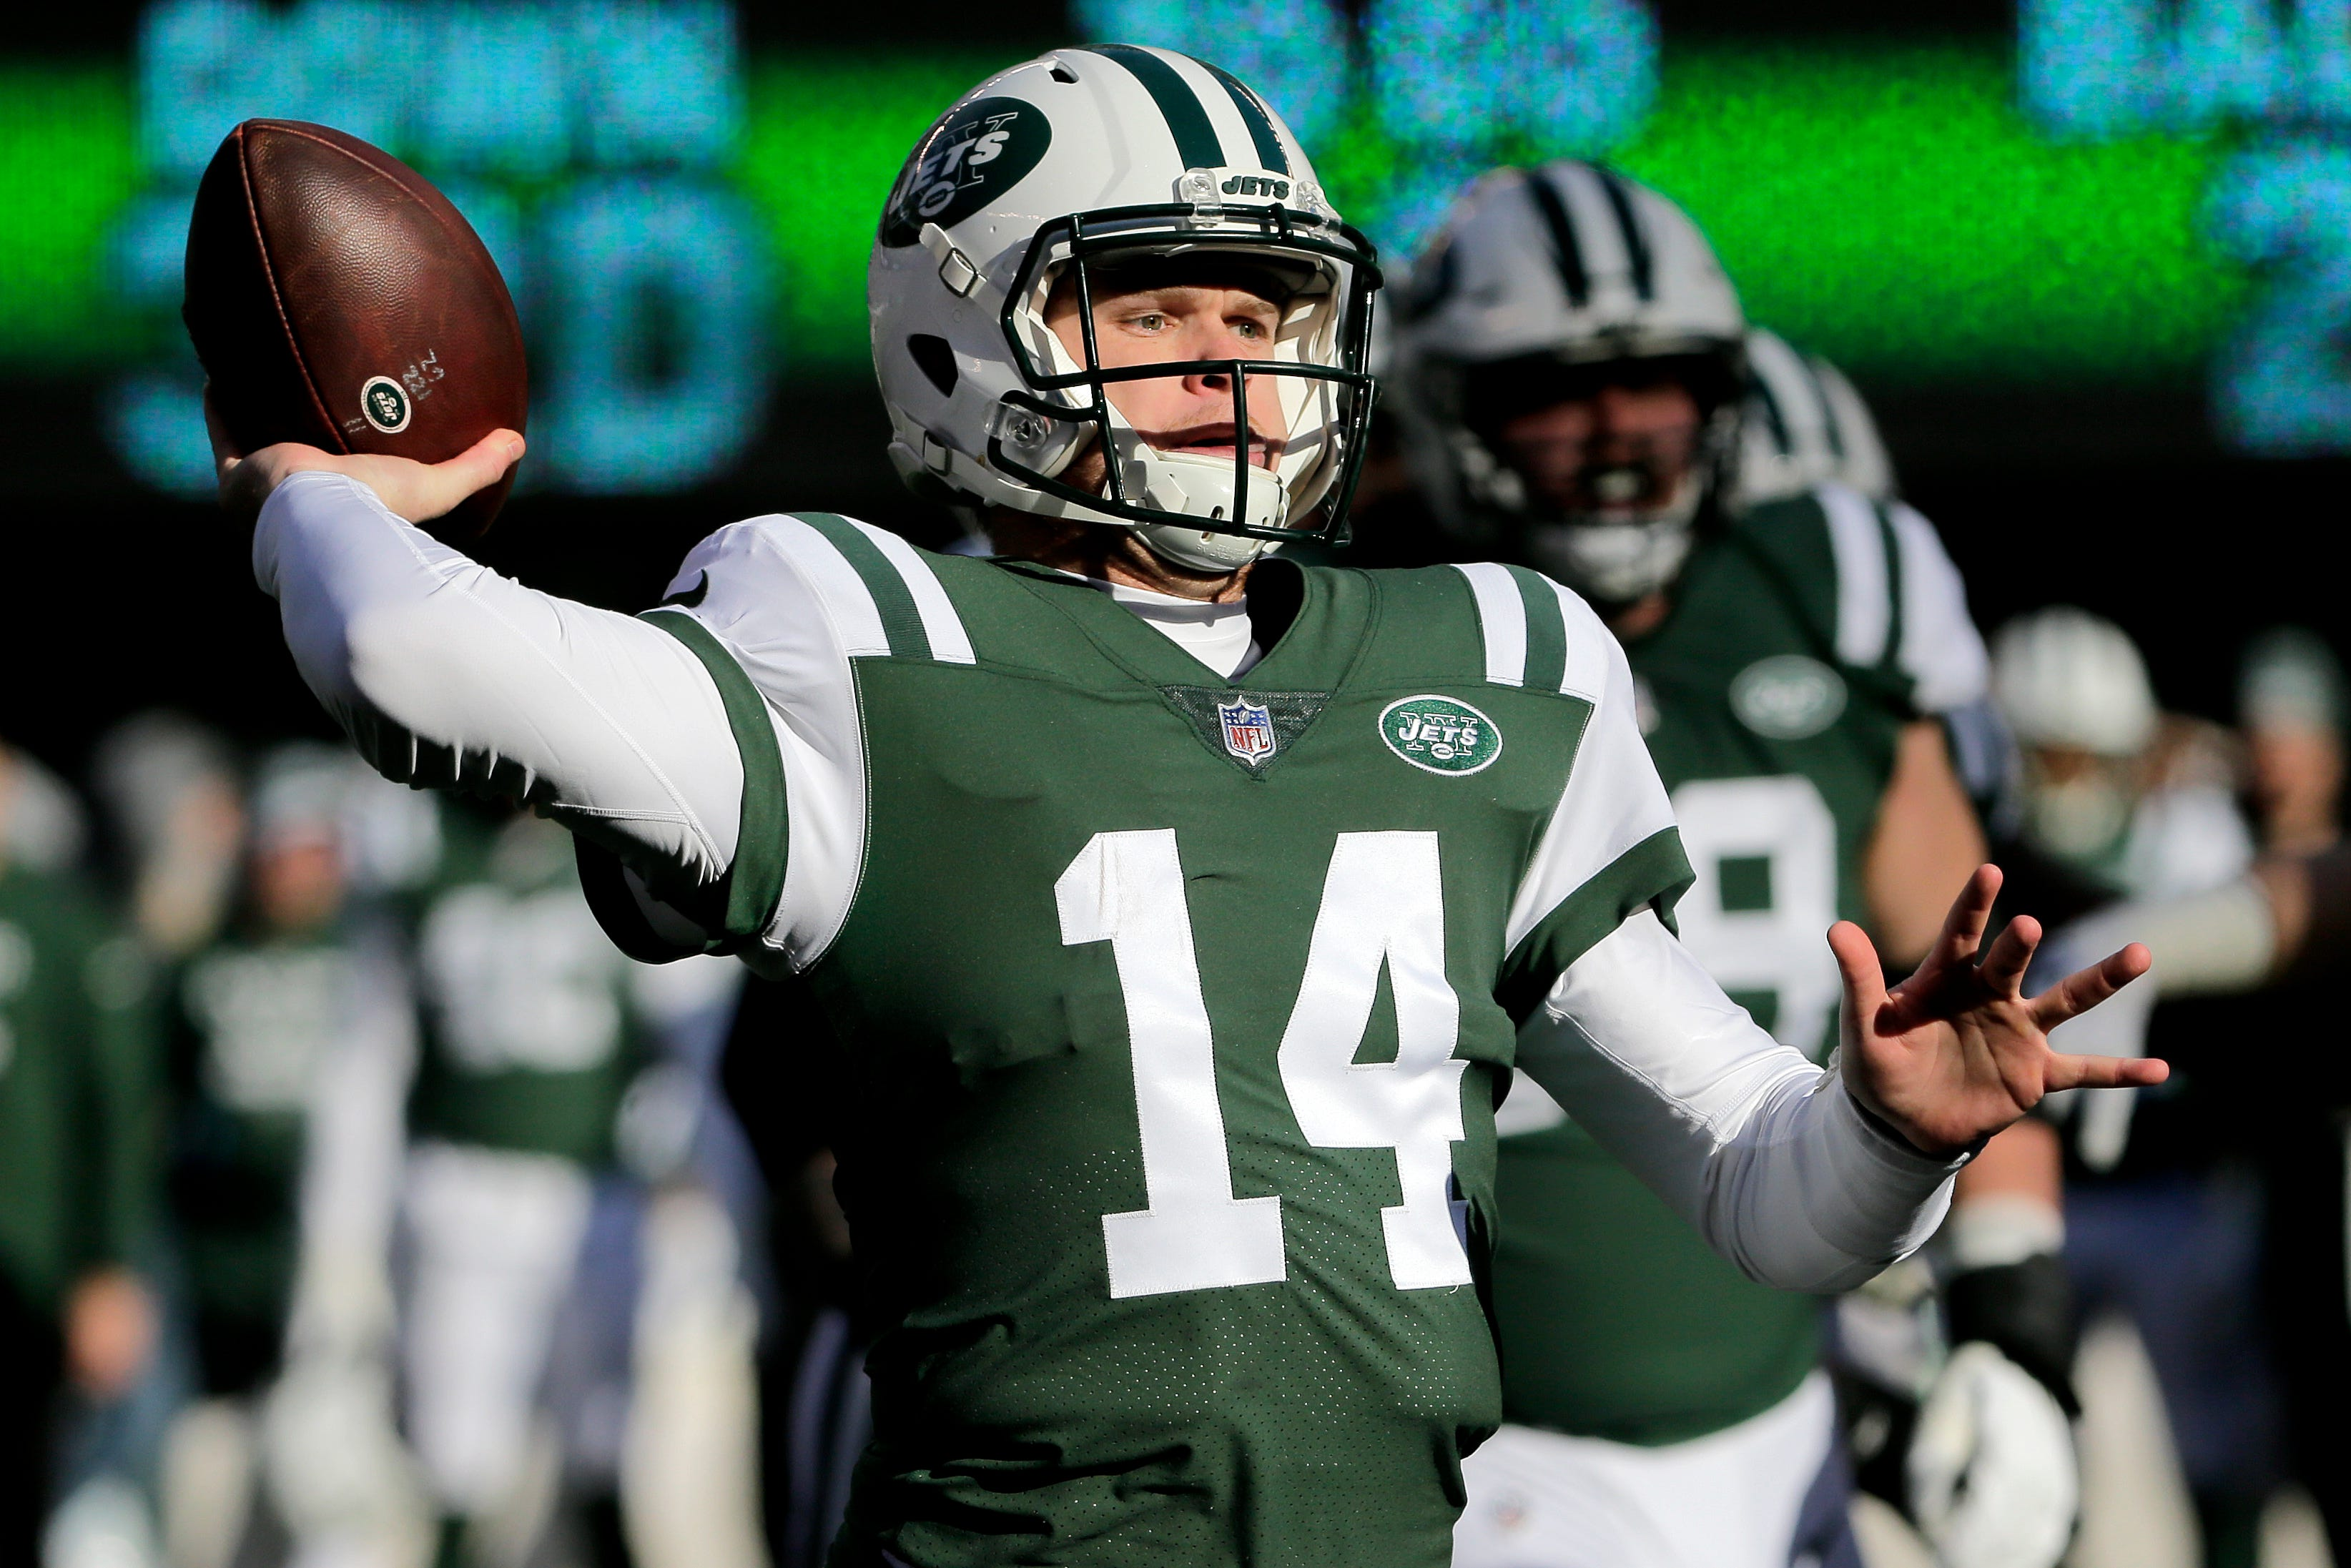 Jets' Darnold wraps up rookie year by facing Rodgers, Brady